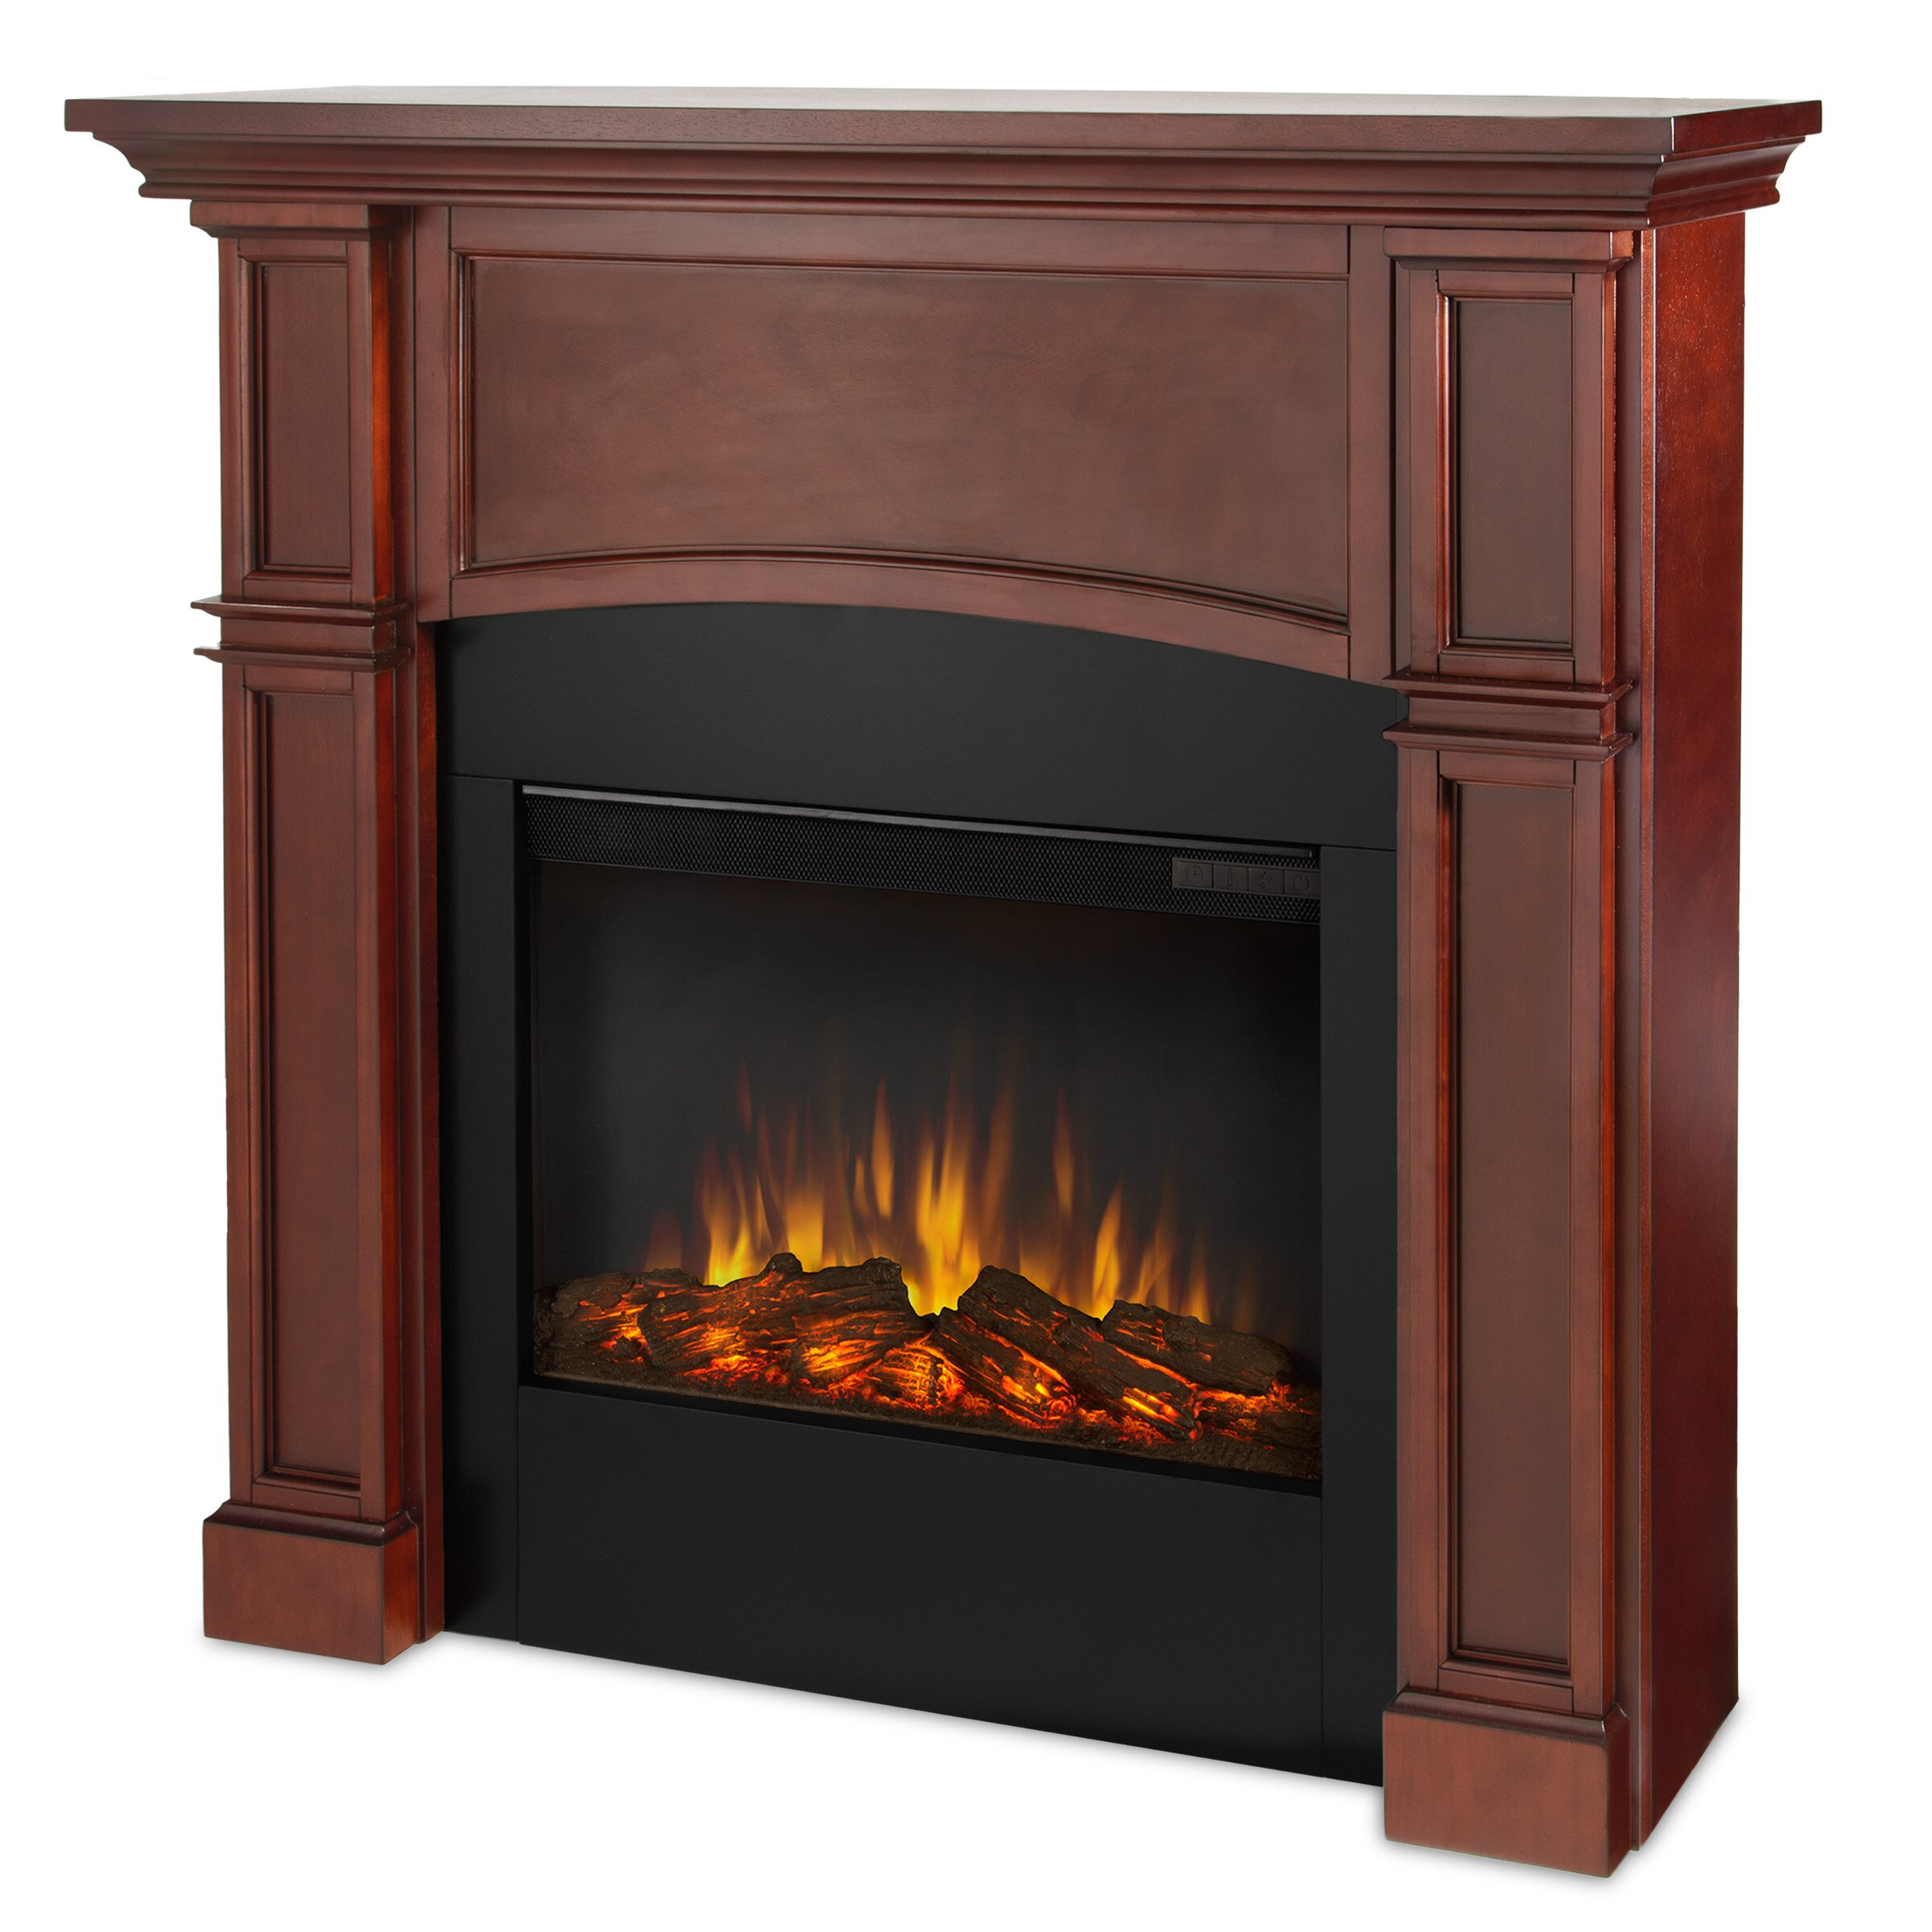 Real Flame Slim Bradford Wall Mount Electric Fireplace